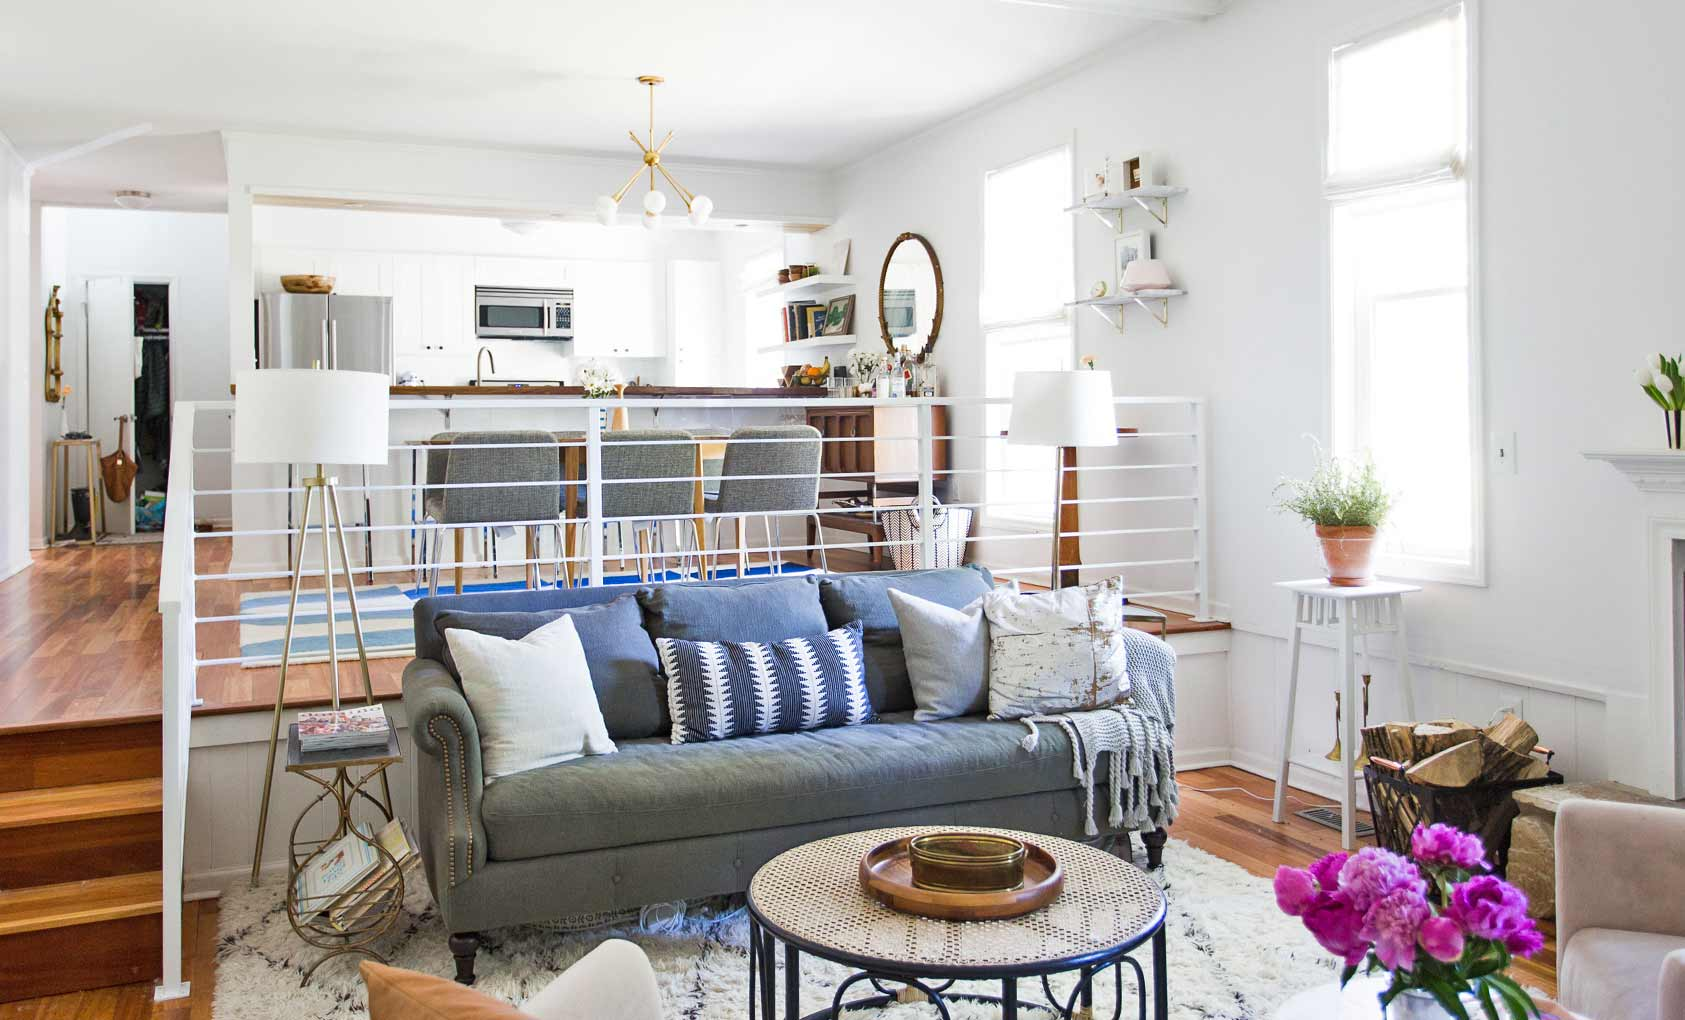 In North Carolina, a Family Sets the Stage for Memory Making, Design*Sponge